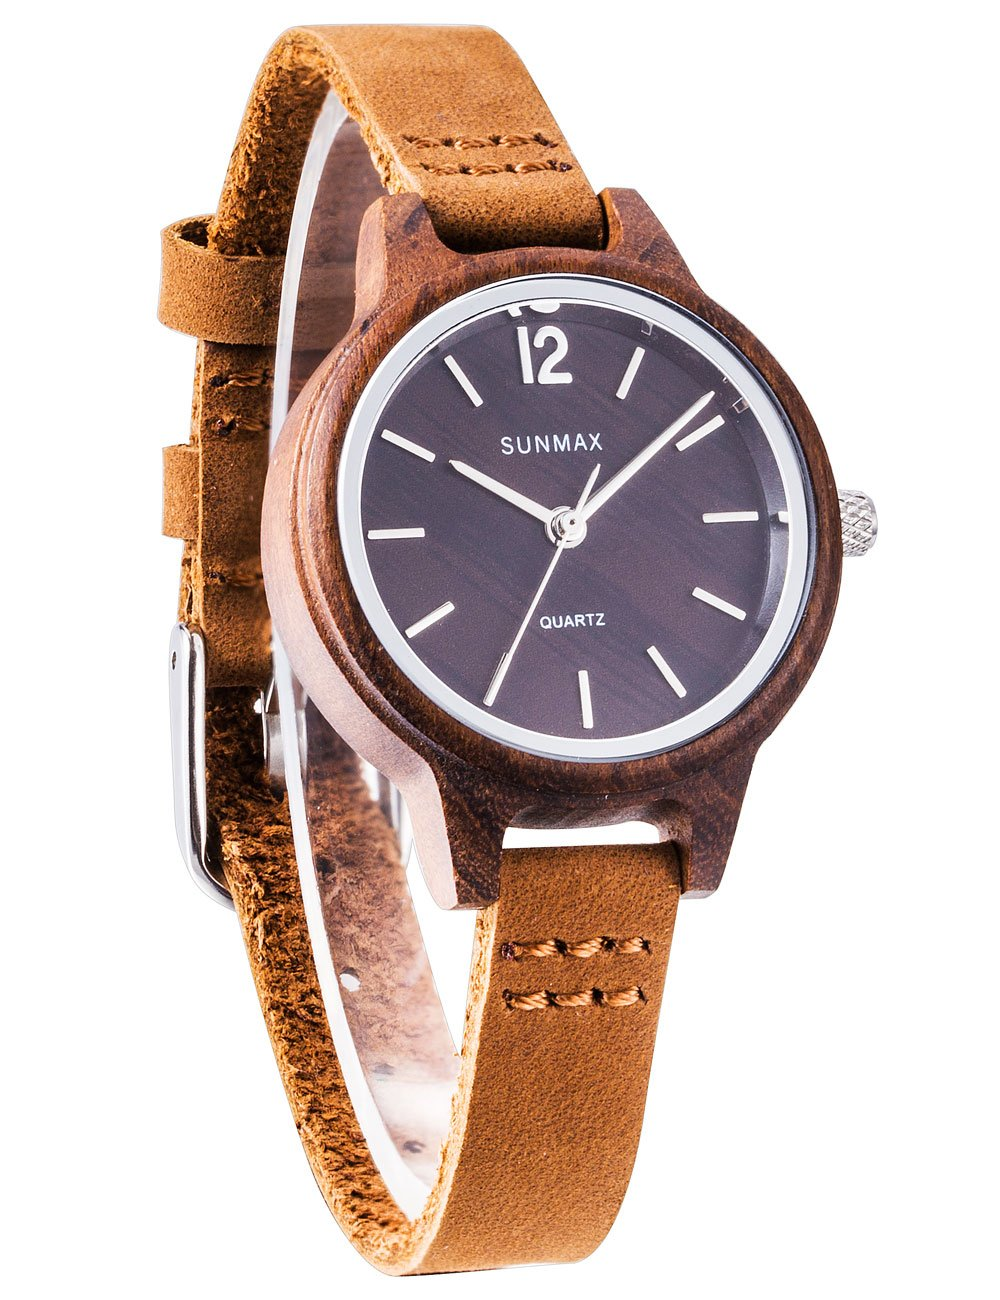 SUNMAX Wooden Watches for Women's Girl Friend Ebony Wood Series/Dial 30mm/Leather Strap/Wood Bezel/Analog Quartz Movement-Bamboo Wrist Watch Gift Box